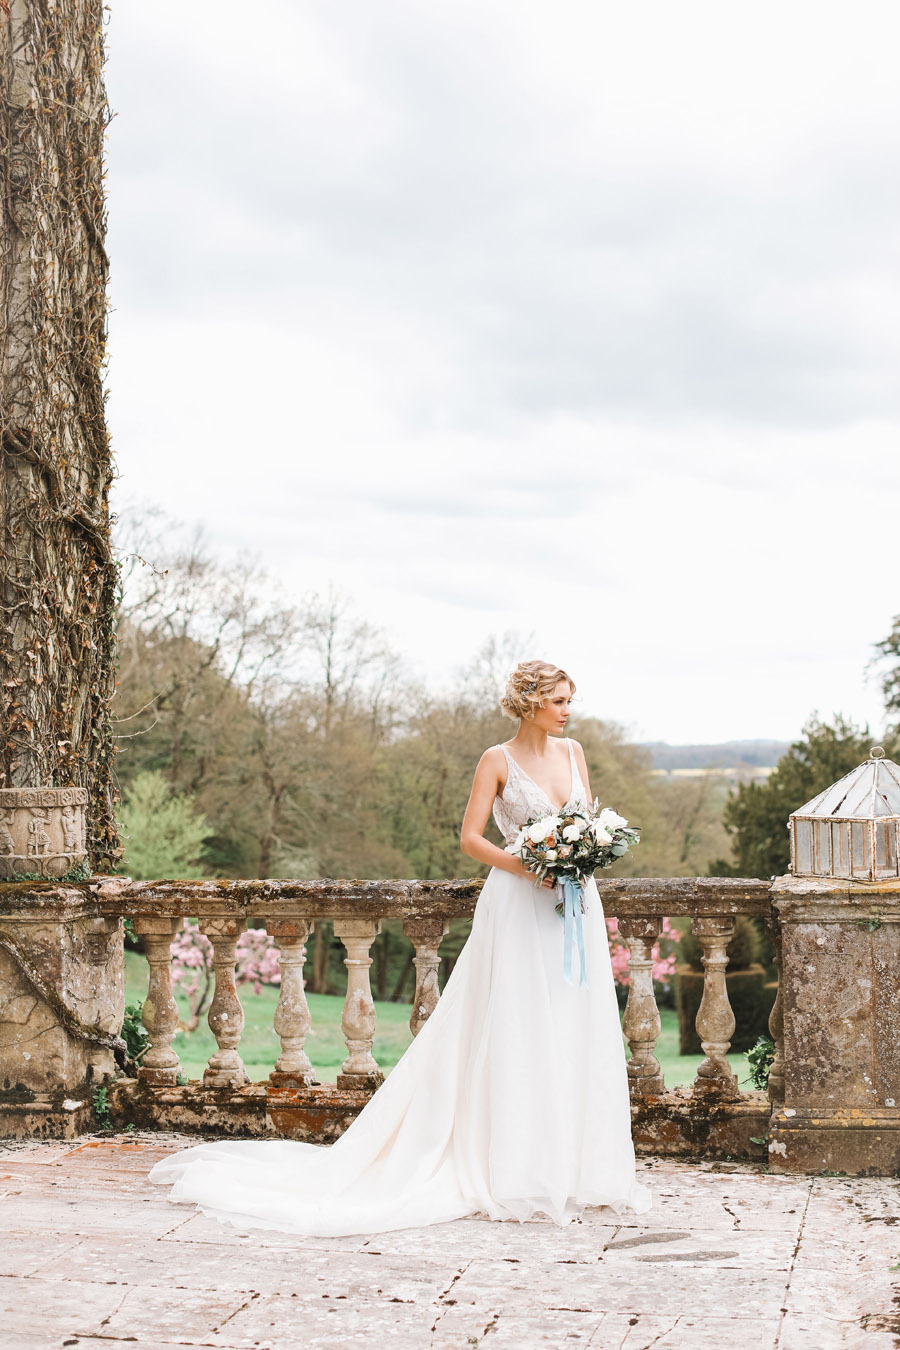 Romantic wedding ideas from Hale Park, photo by Charlotte Wise Photography (5)